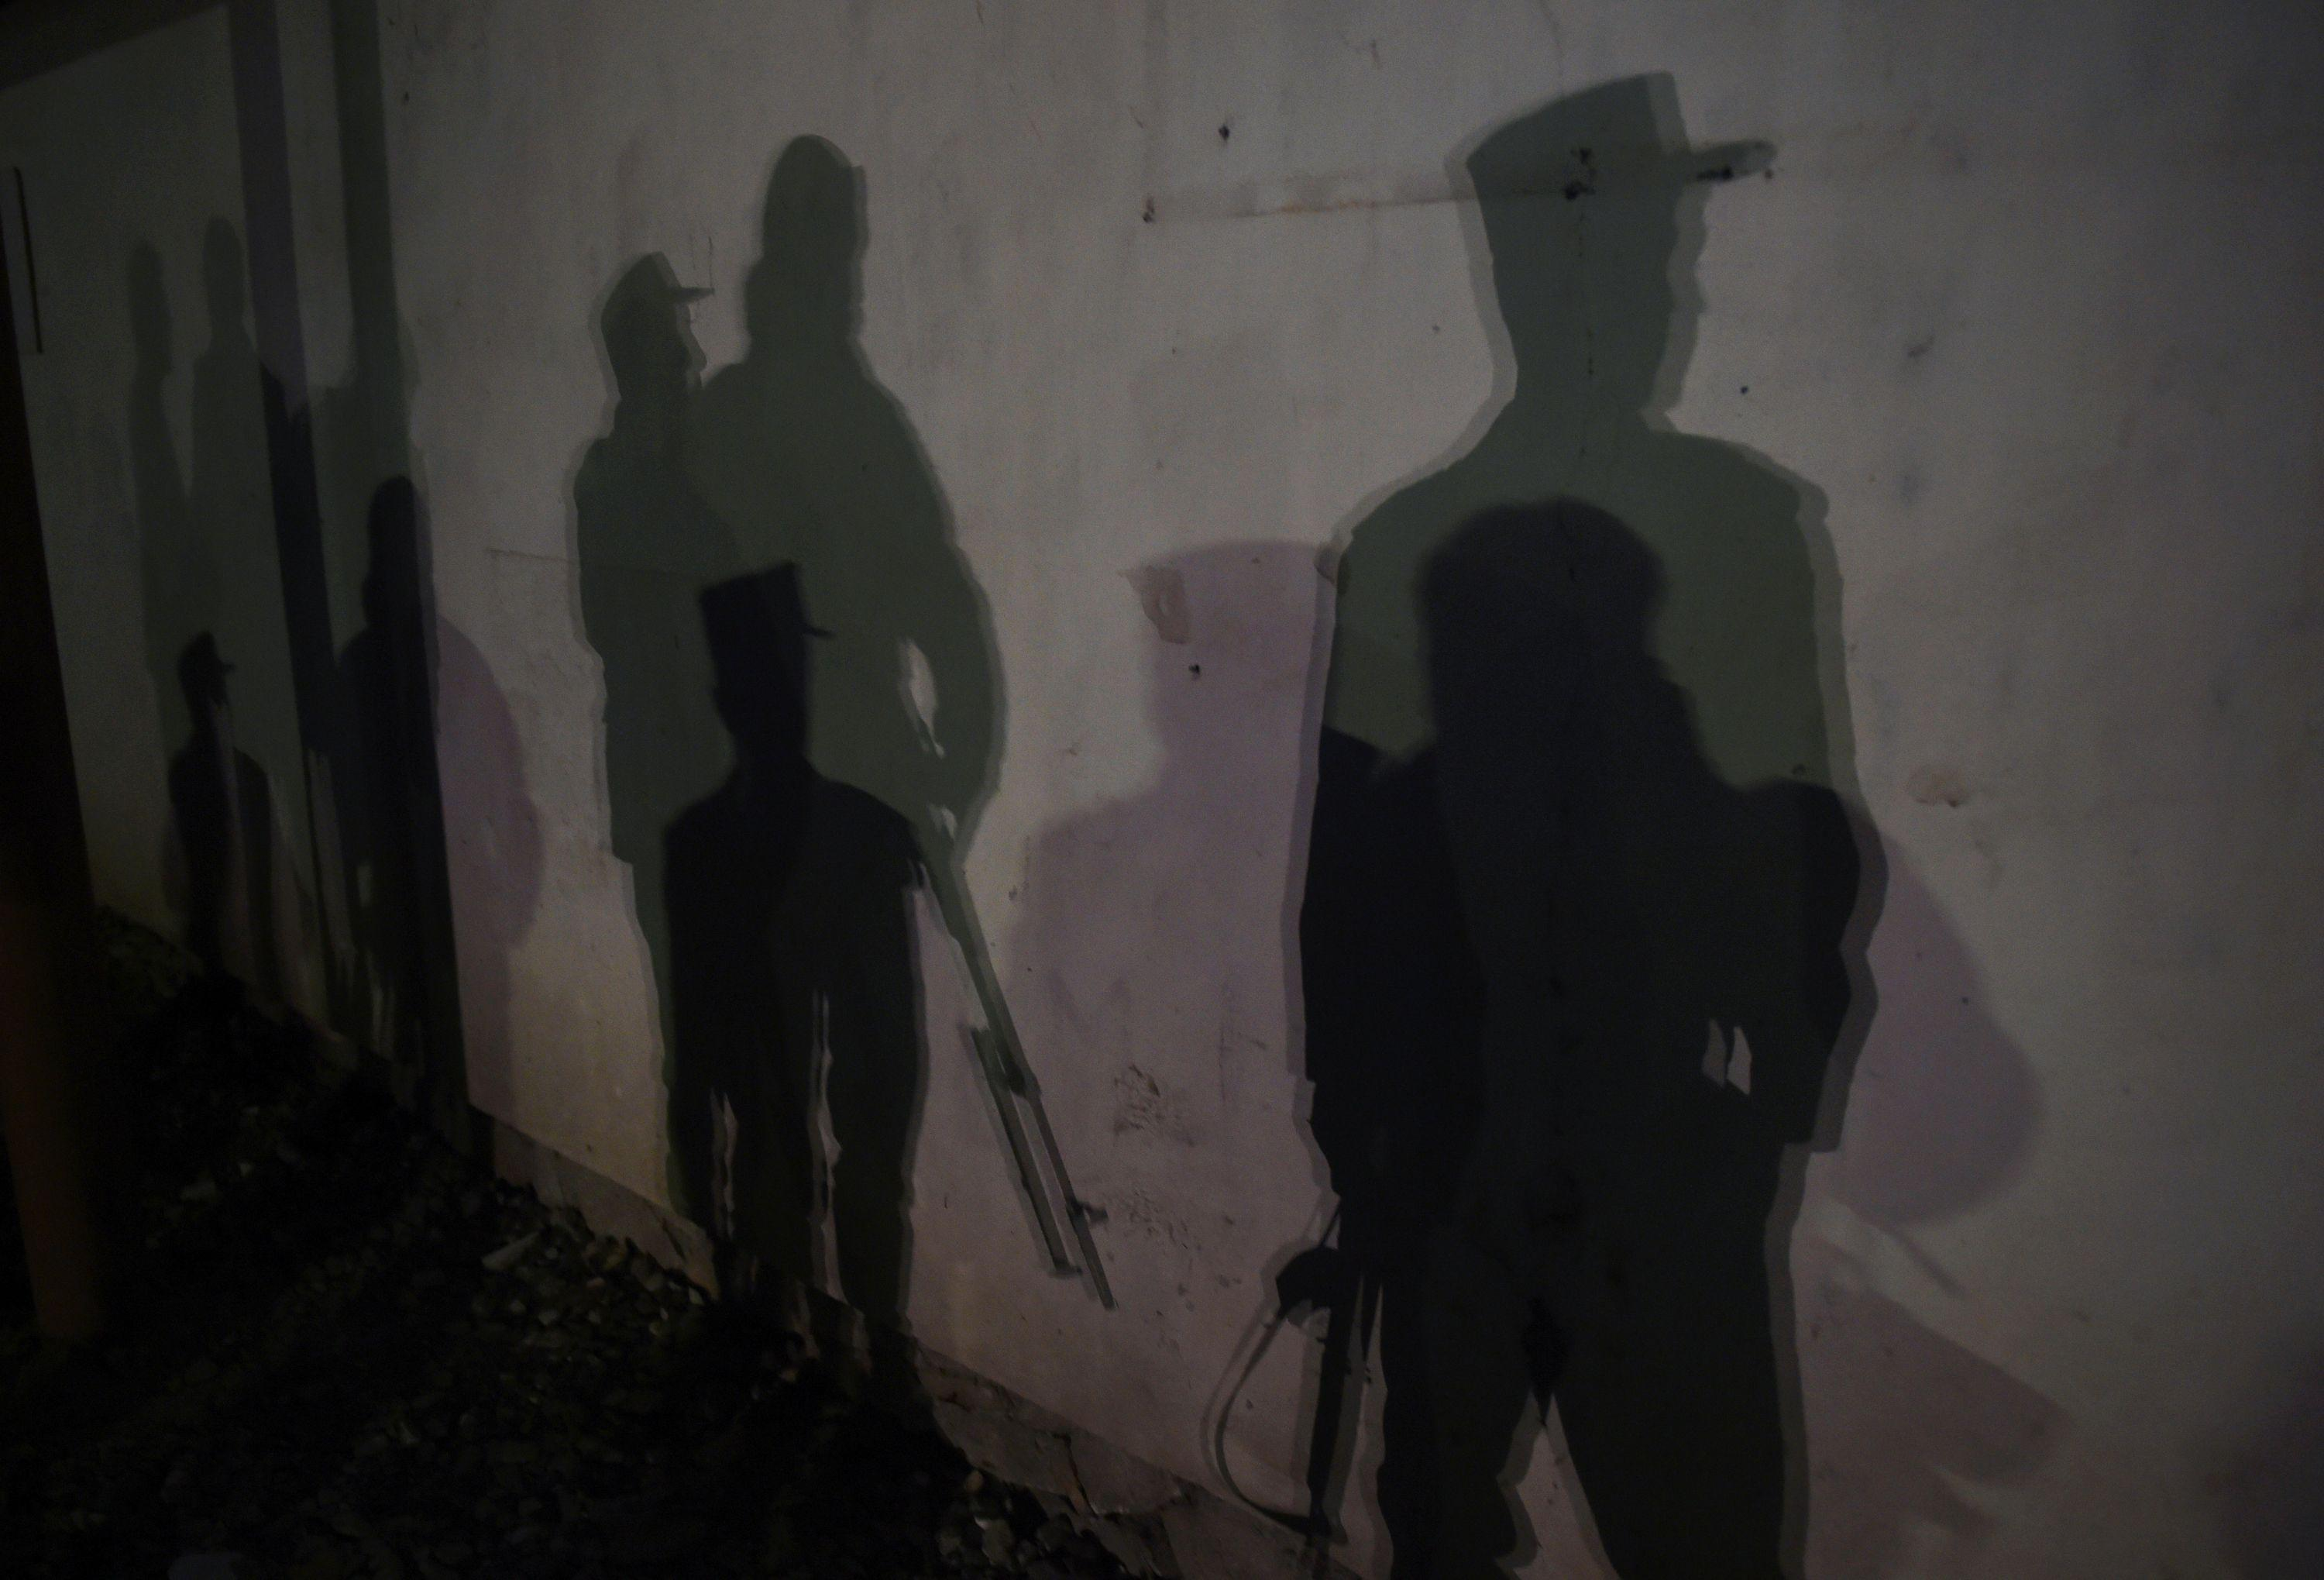 <p>The shadows of Afghan police officers are seen near the site of an attack on the Spanish embassy compound in Kabul on December 11, 2015. Insurgents have launched an attack on a Spanish embassy compound in Kabul on December 11, Afghan officials said, following reports of gunfire and a massive car bomb in the centre of the city. (Photo: Shah Marai/ AFP/Getty Images) </p>